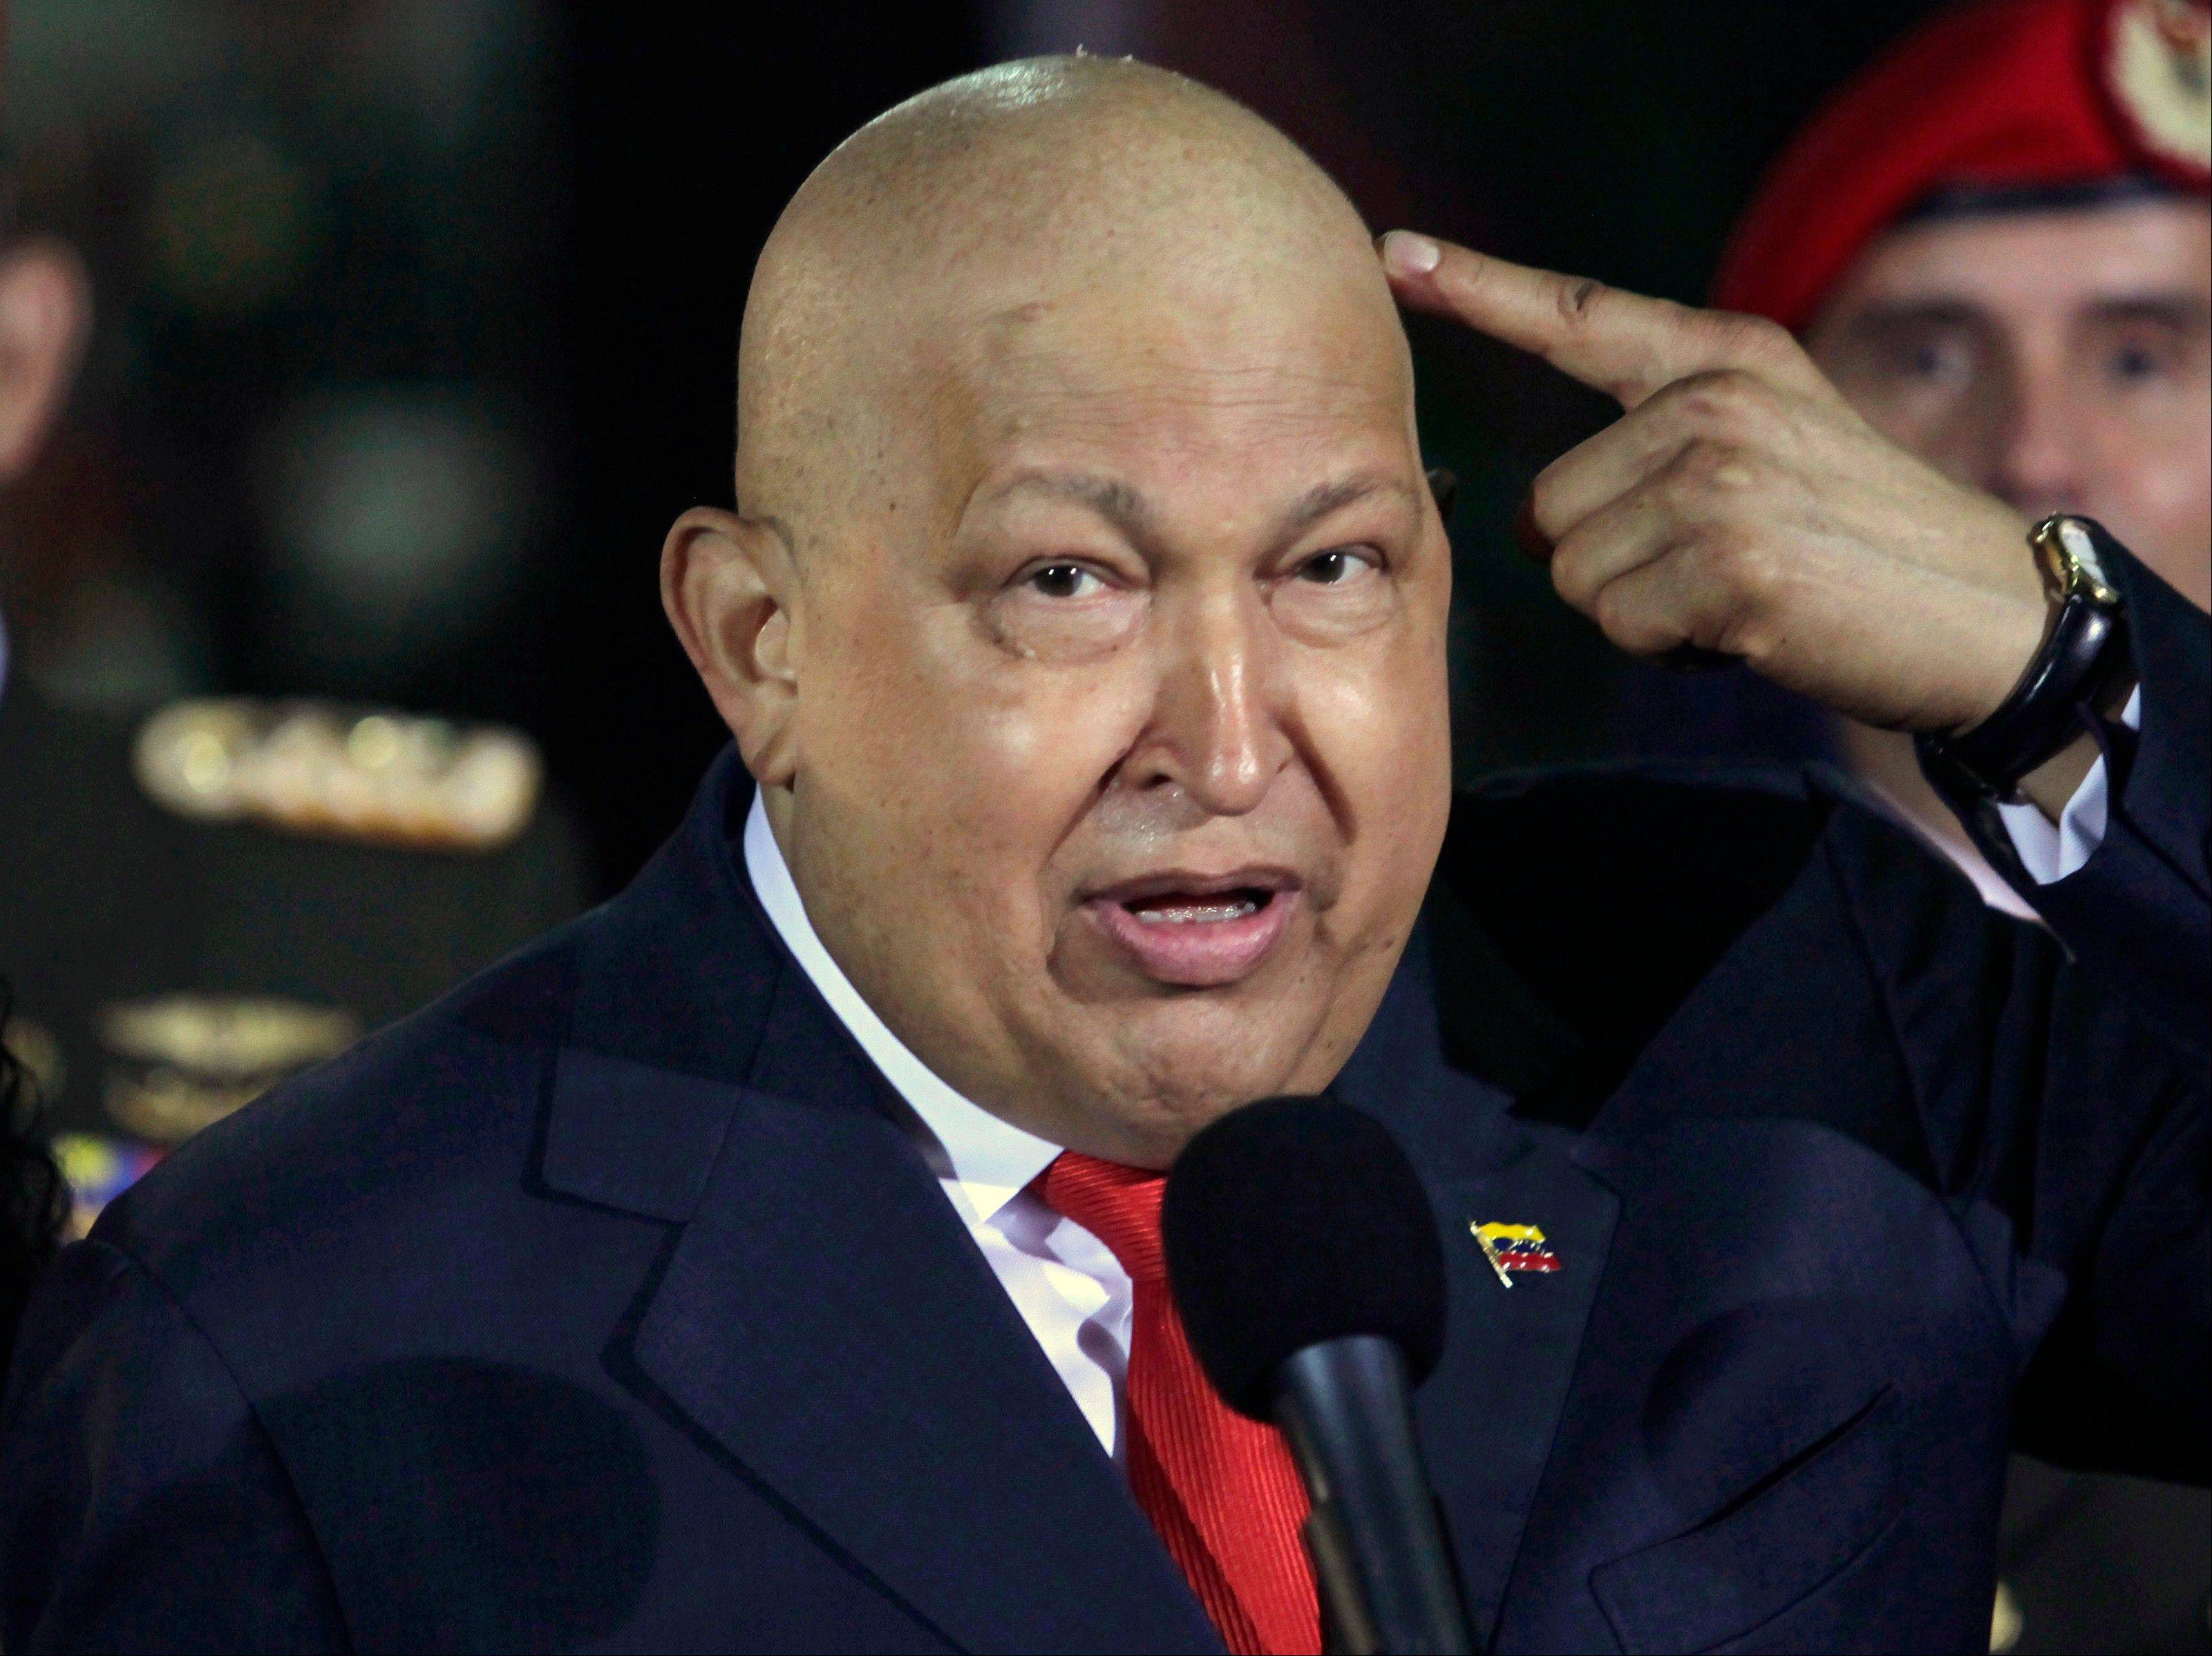 In this Oct. 11, 2011, photo, Venezuela's President Hugo Chavez points at his head to show his hair has started to grow back after his last round of chemotherapy at Miraflores presidential palace in Caracas, Venezuela. Chavez was reported to have died Tuesday.